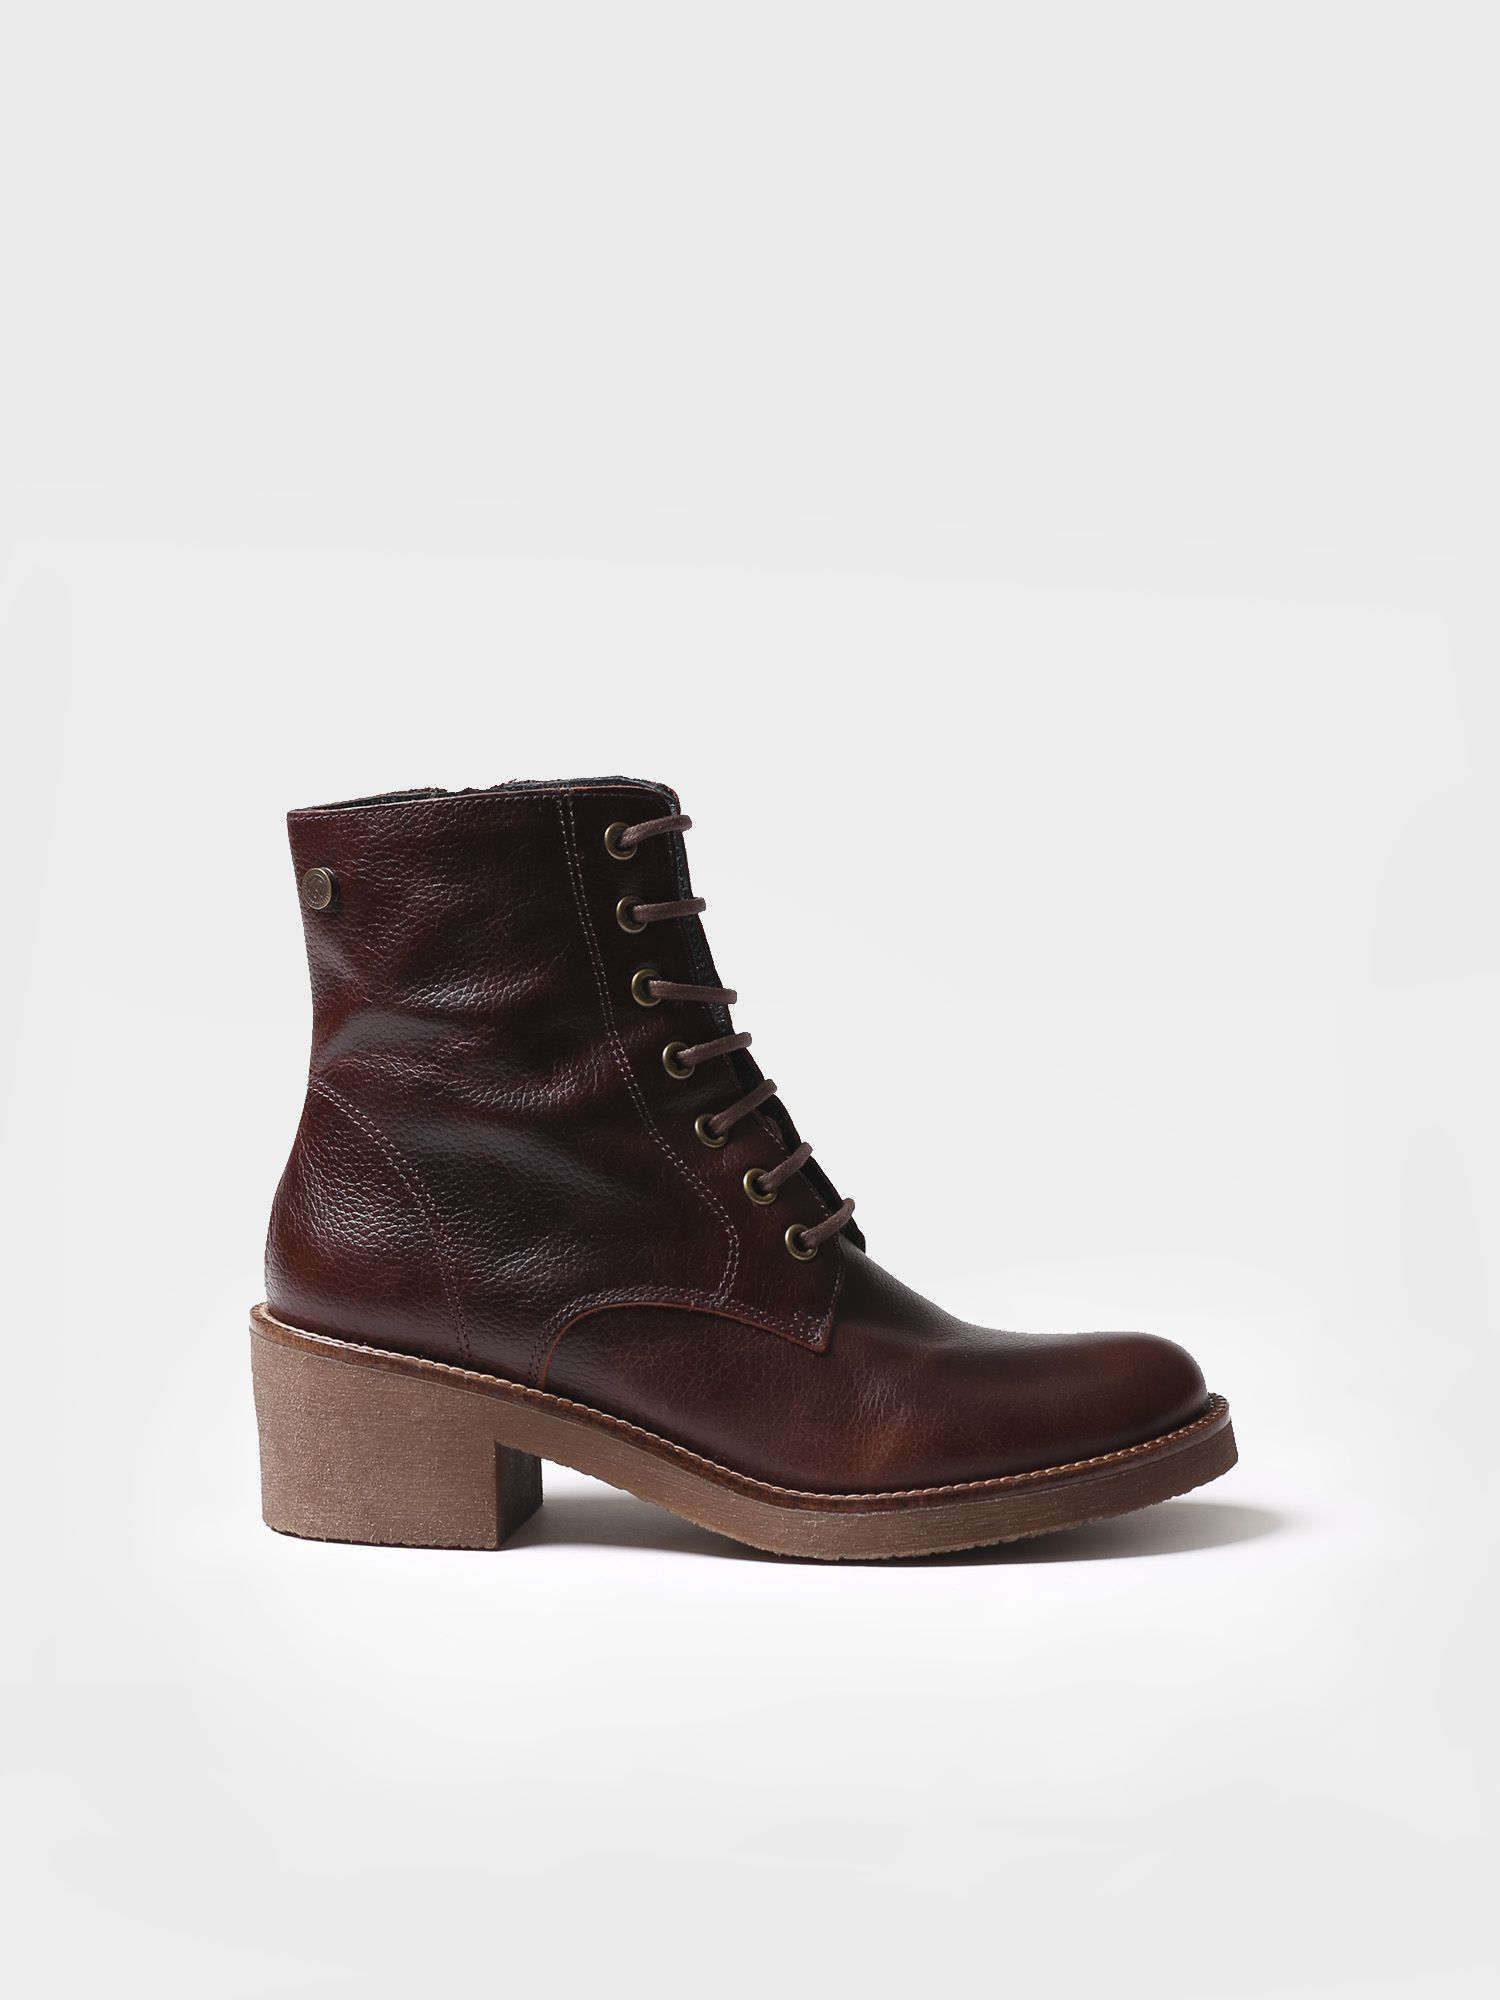 Ankle boot for women made of brown leather - PAVIA-PO